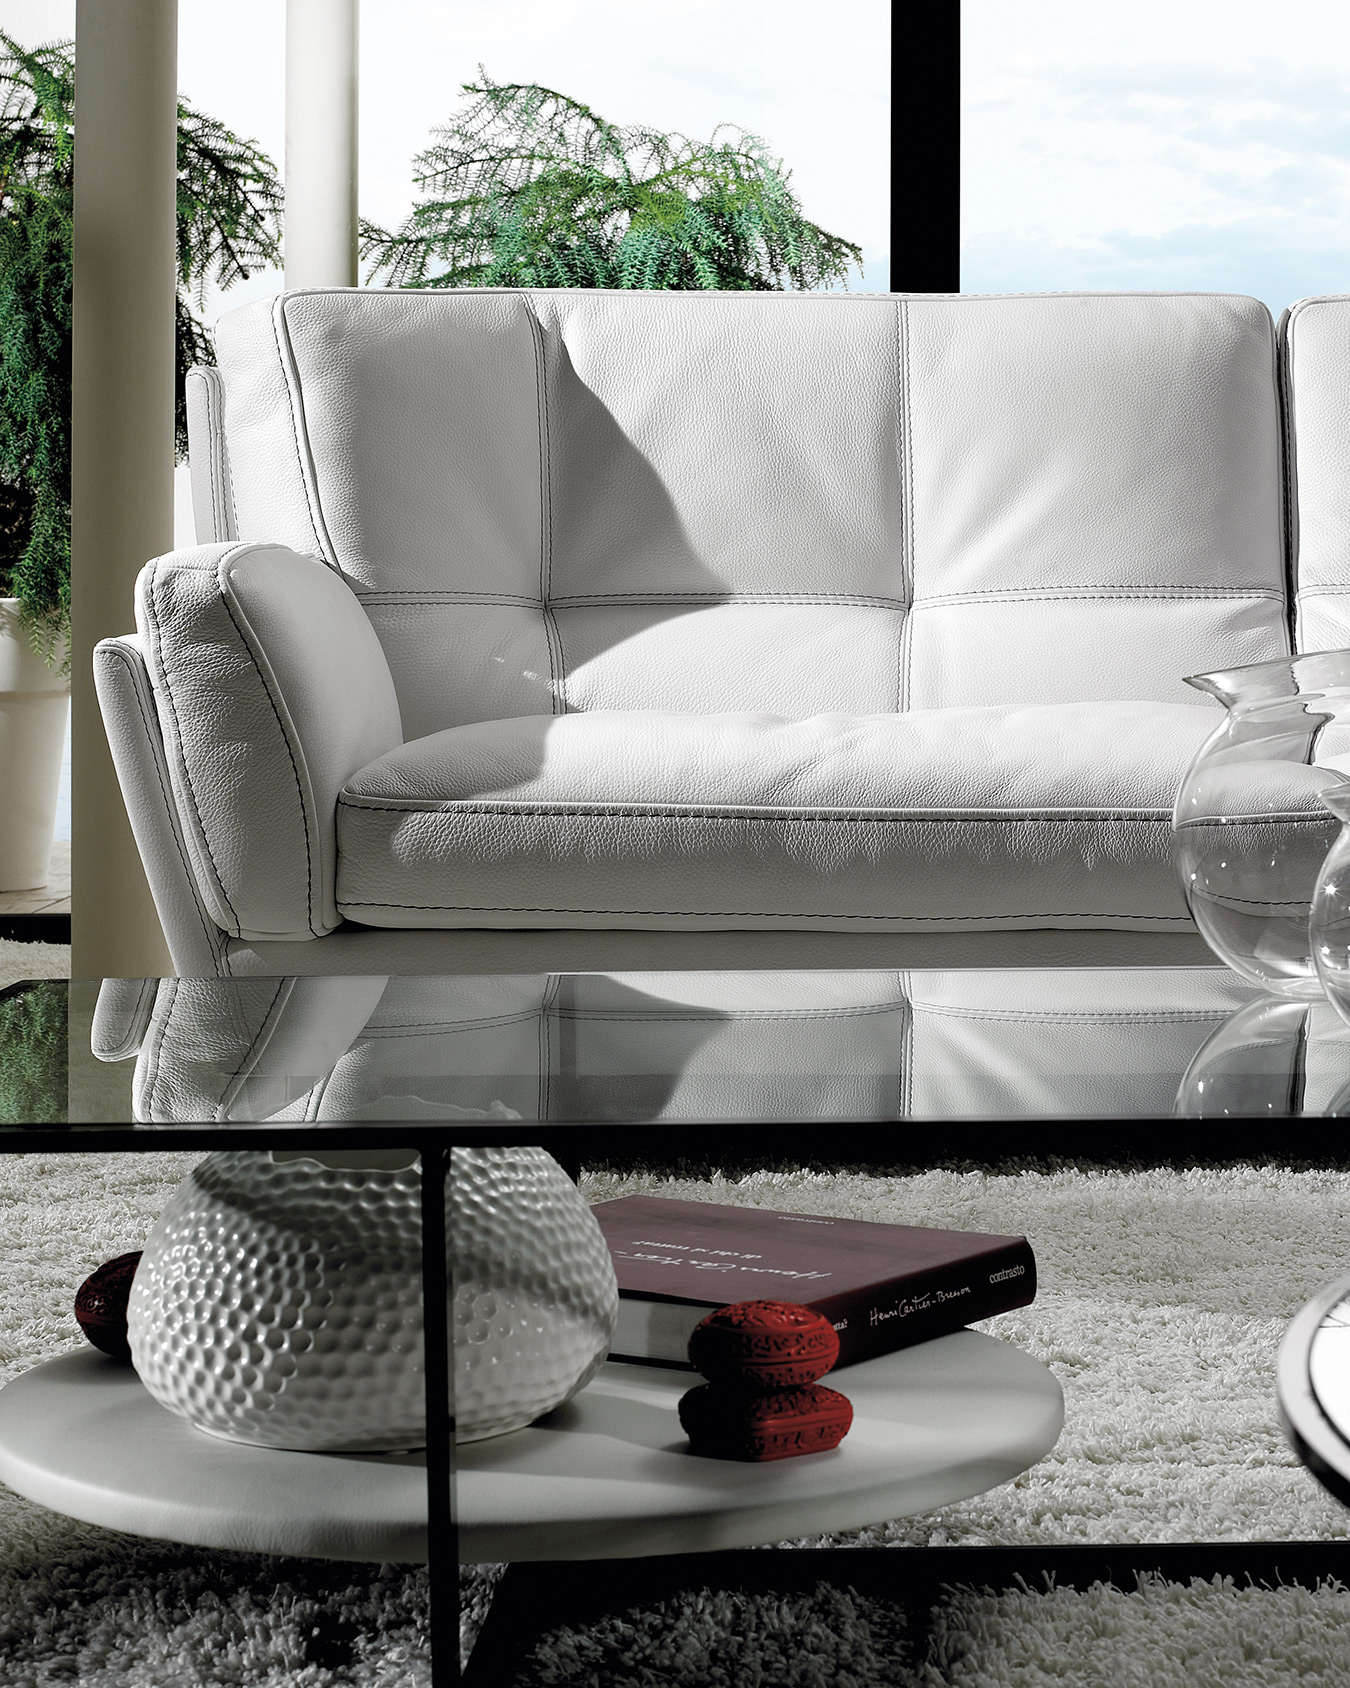 white leather bed, comfy white leather sofa close up view, simple white leather white sofa,